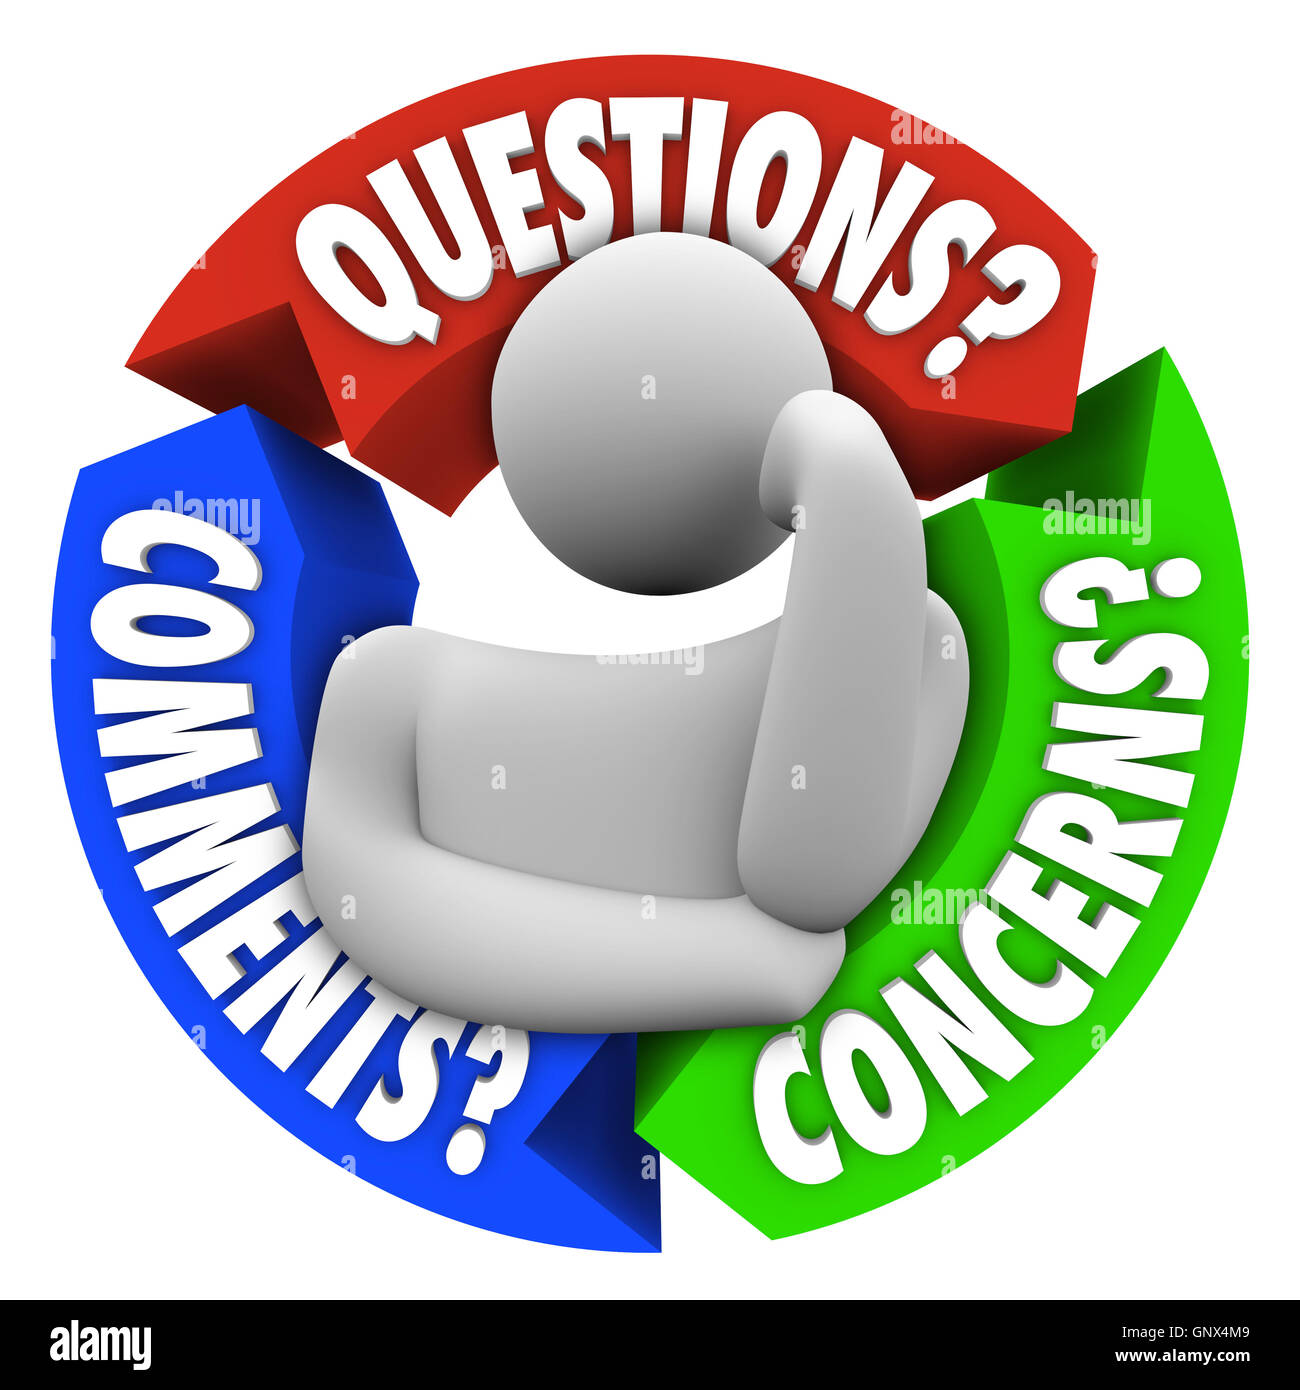 Questions Comments Concerns Customer Support Diagram - Stock Image